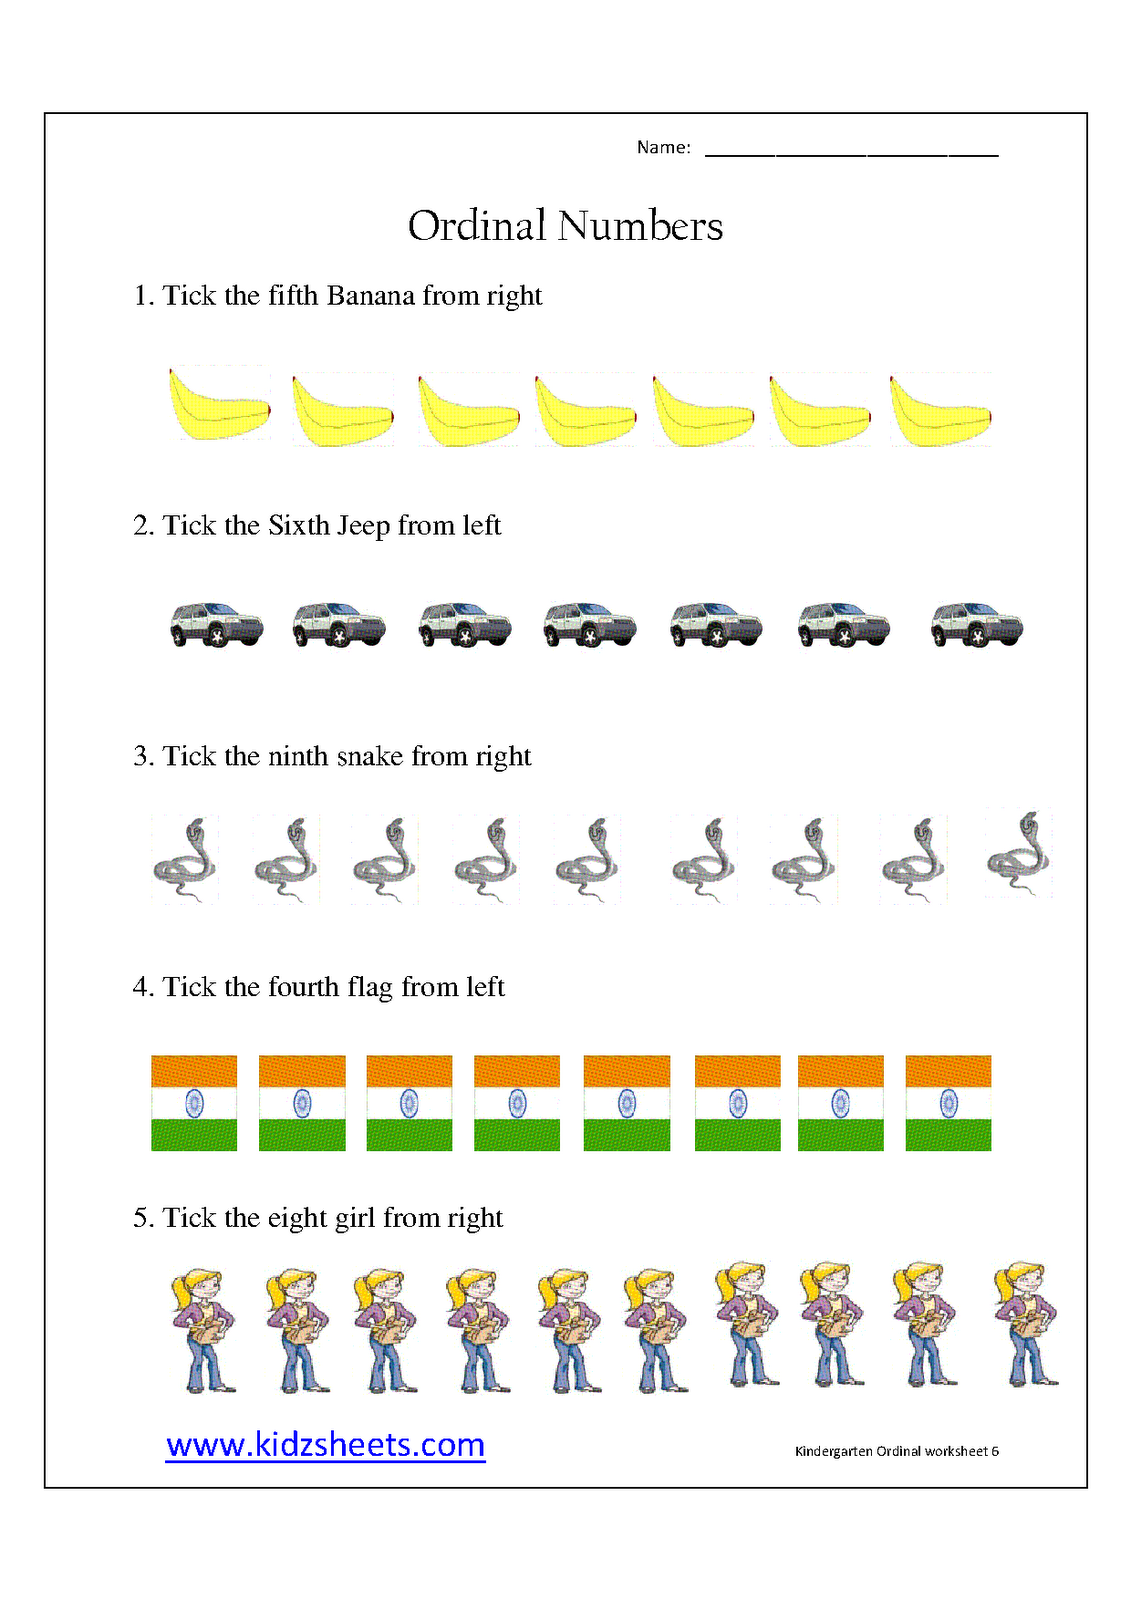 Kidz Worksheets Kindergarten Ordinal Numbers Worksheet6